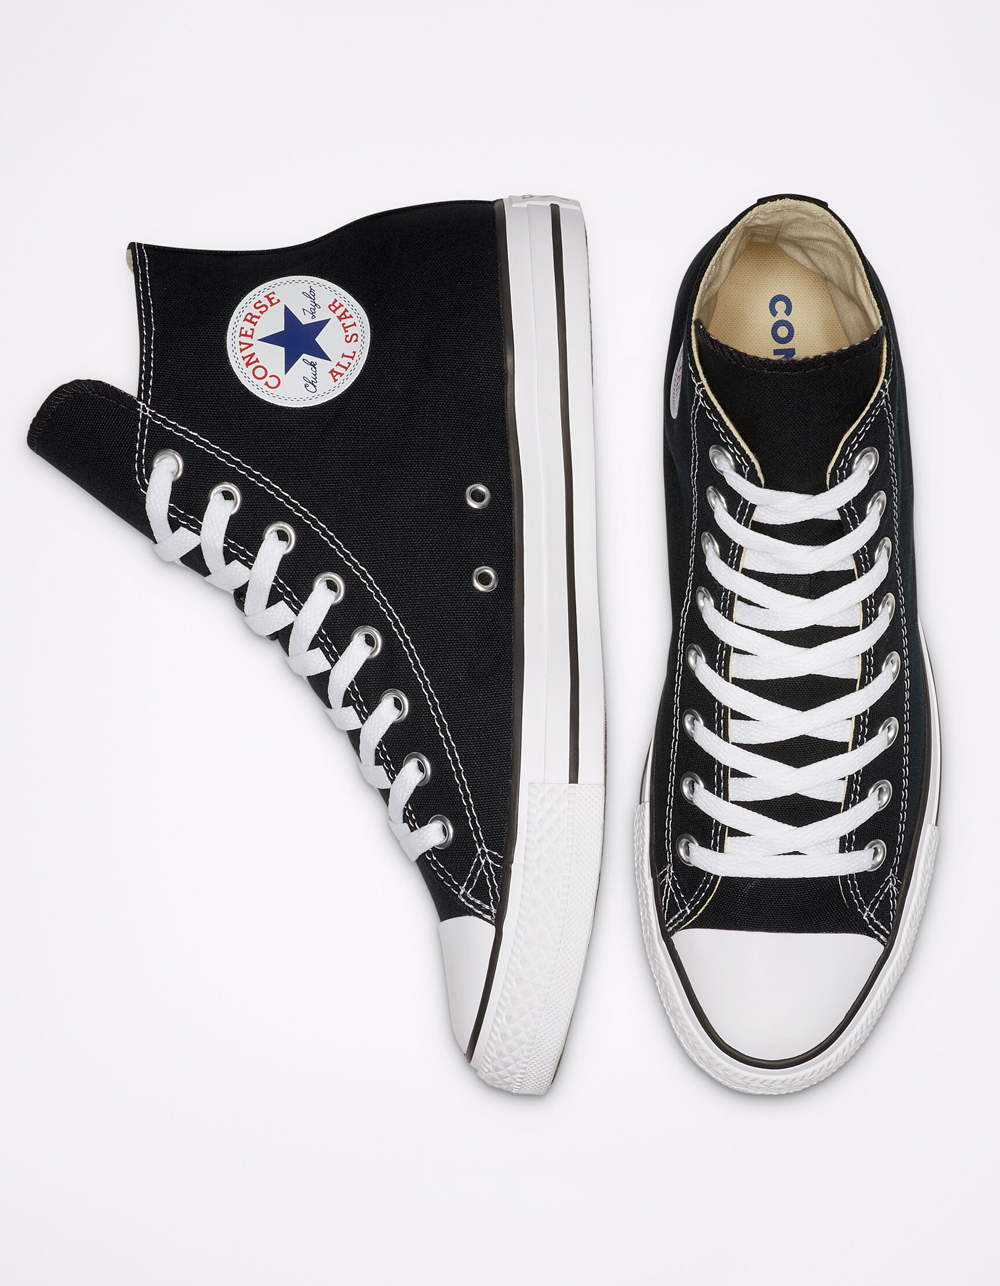 Image of CONVERSE CHUCK TAYLOR ALL STAR BLACK HIGH TOP SHOES